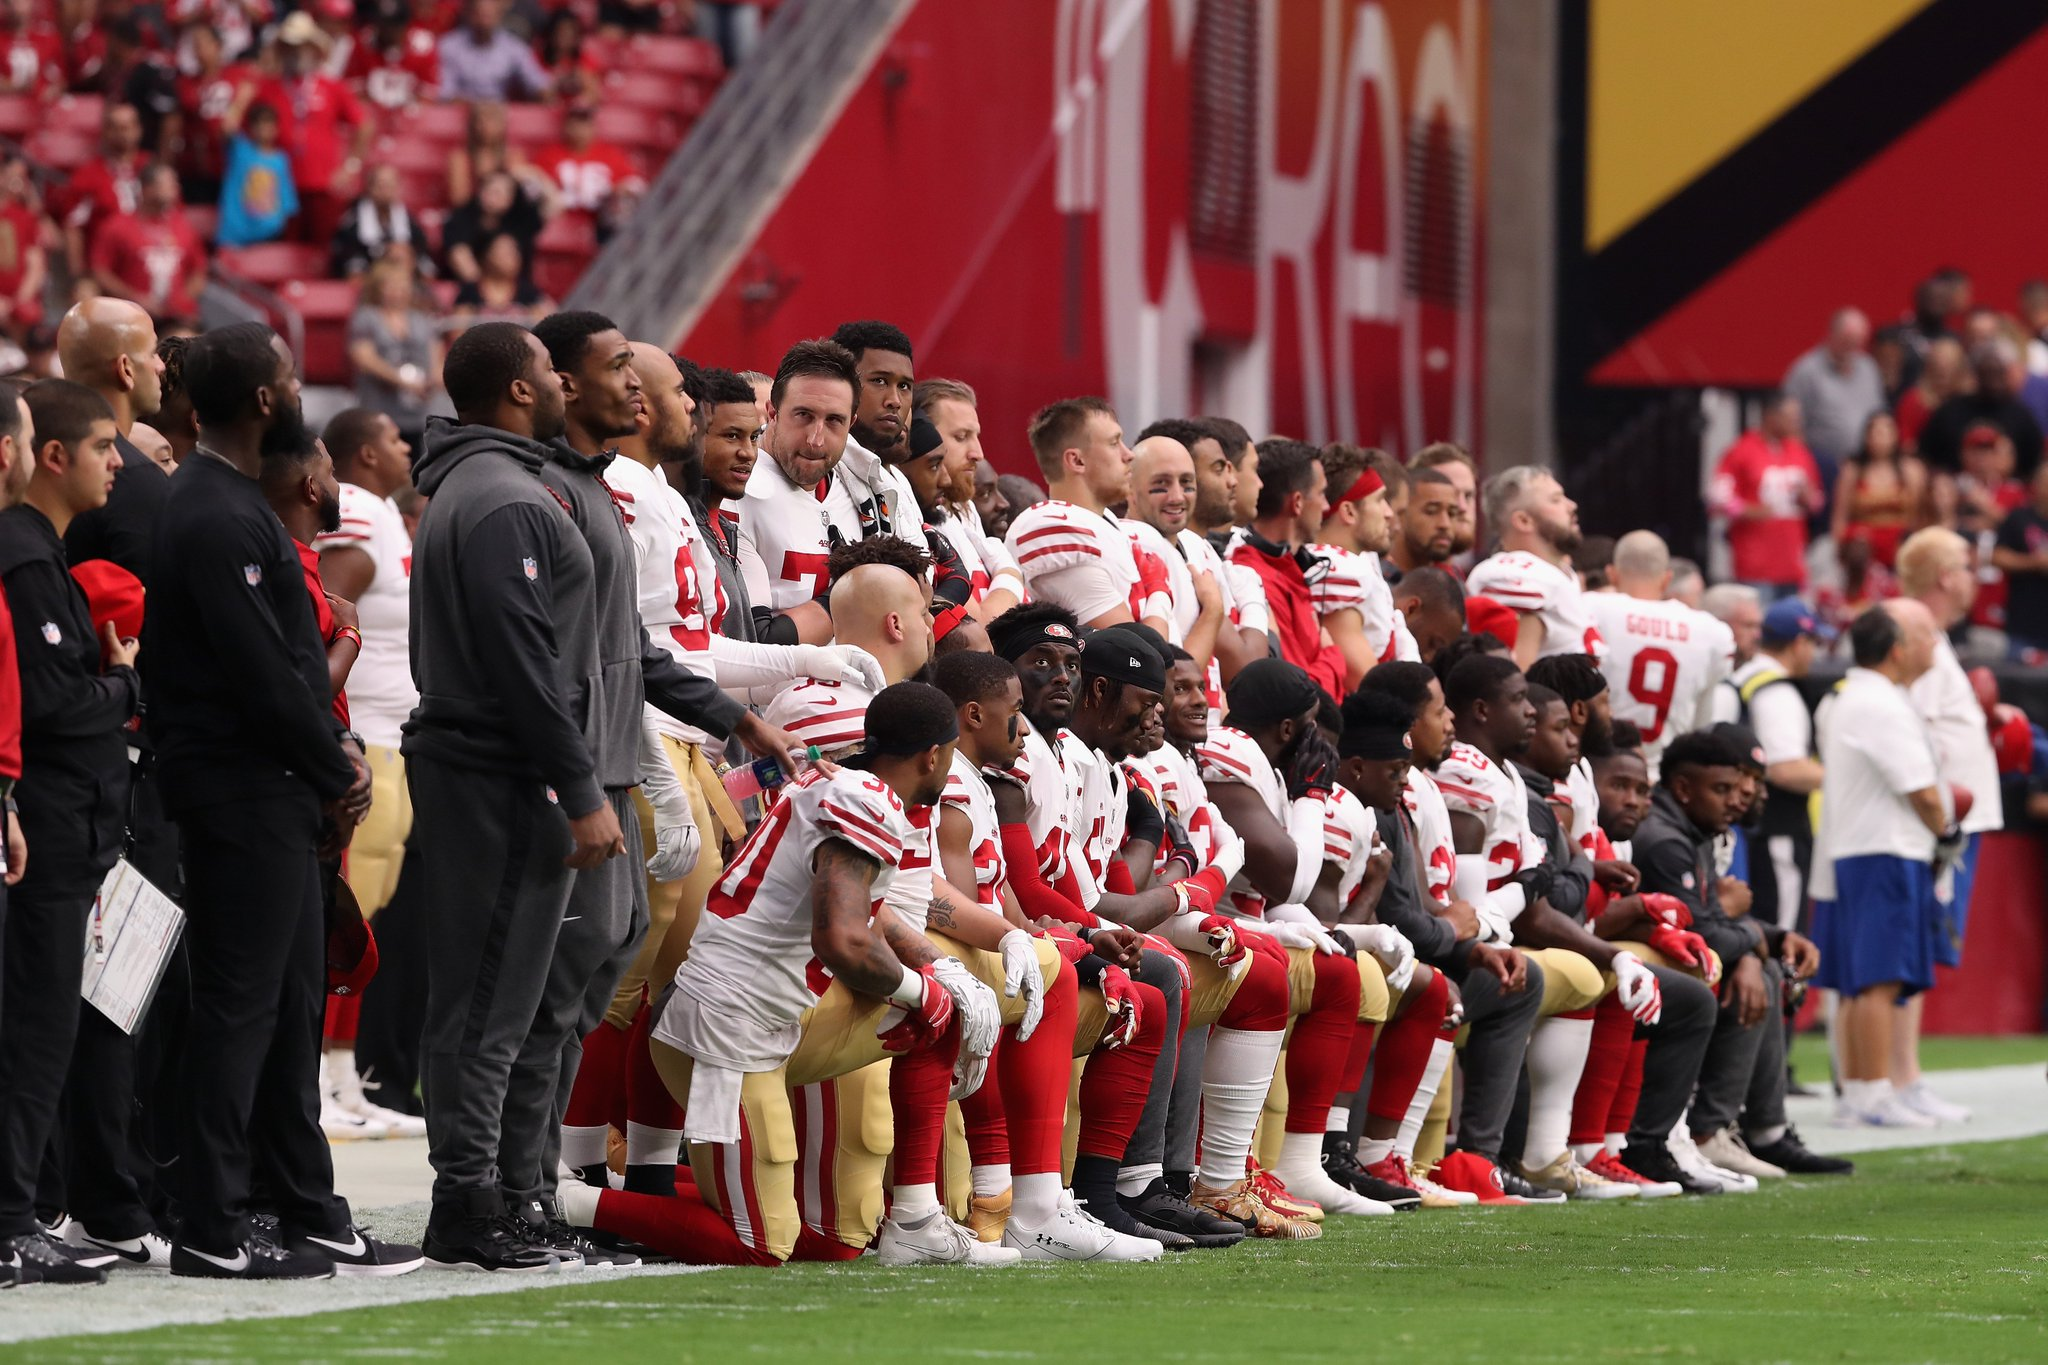 NFL and NFLPA announce no changes to national anthem policy, players can remain kneeling https://t.co/bFDCcF0psf https://t.co/EEzdxJ4AYx